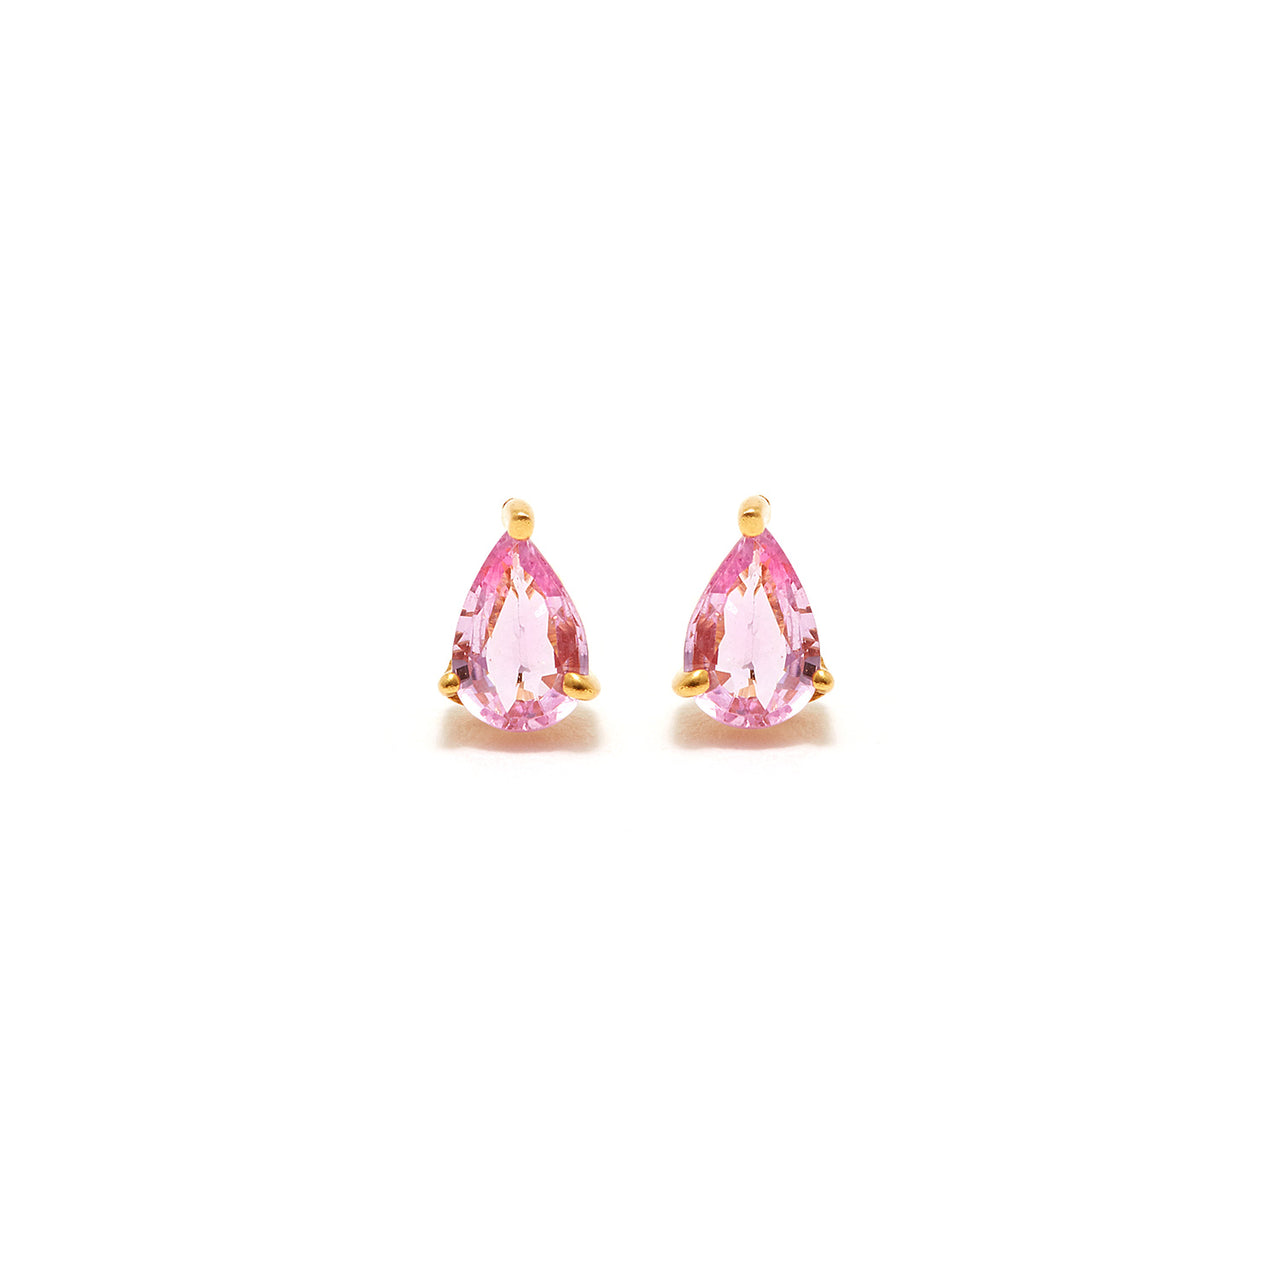 Pink Sapphire Earrings-Earrings-Jaipur Atelier